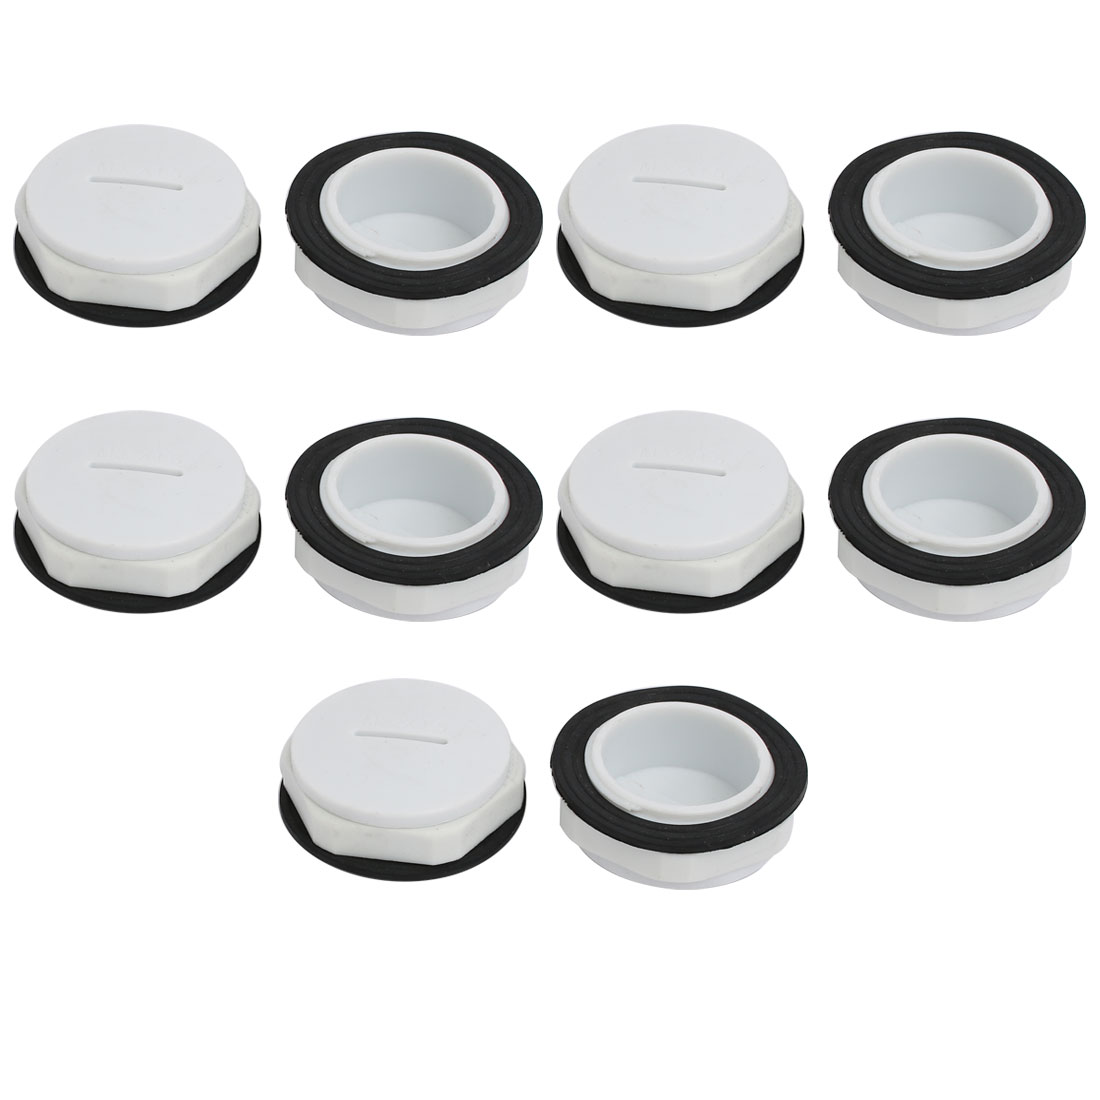 M32 Nylon Male Threaded Cable Gland Screw End Cap Cover Gray 10pcs